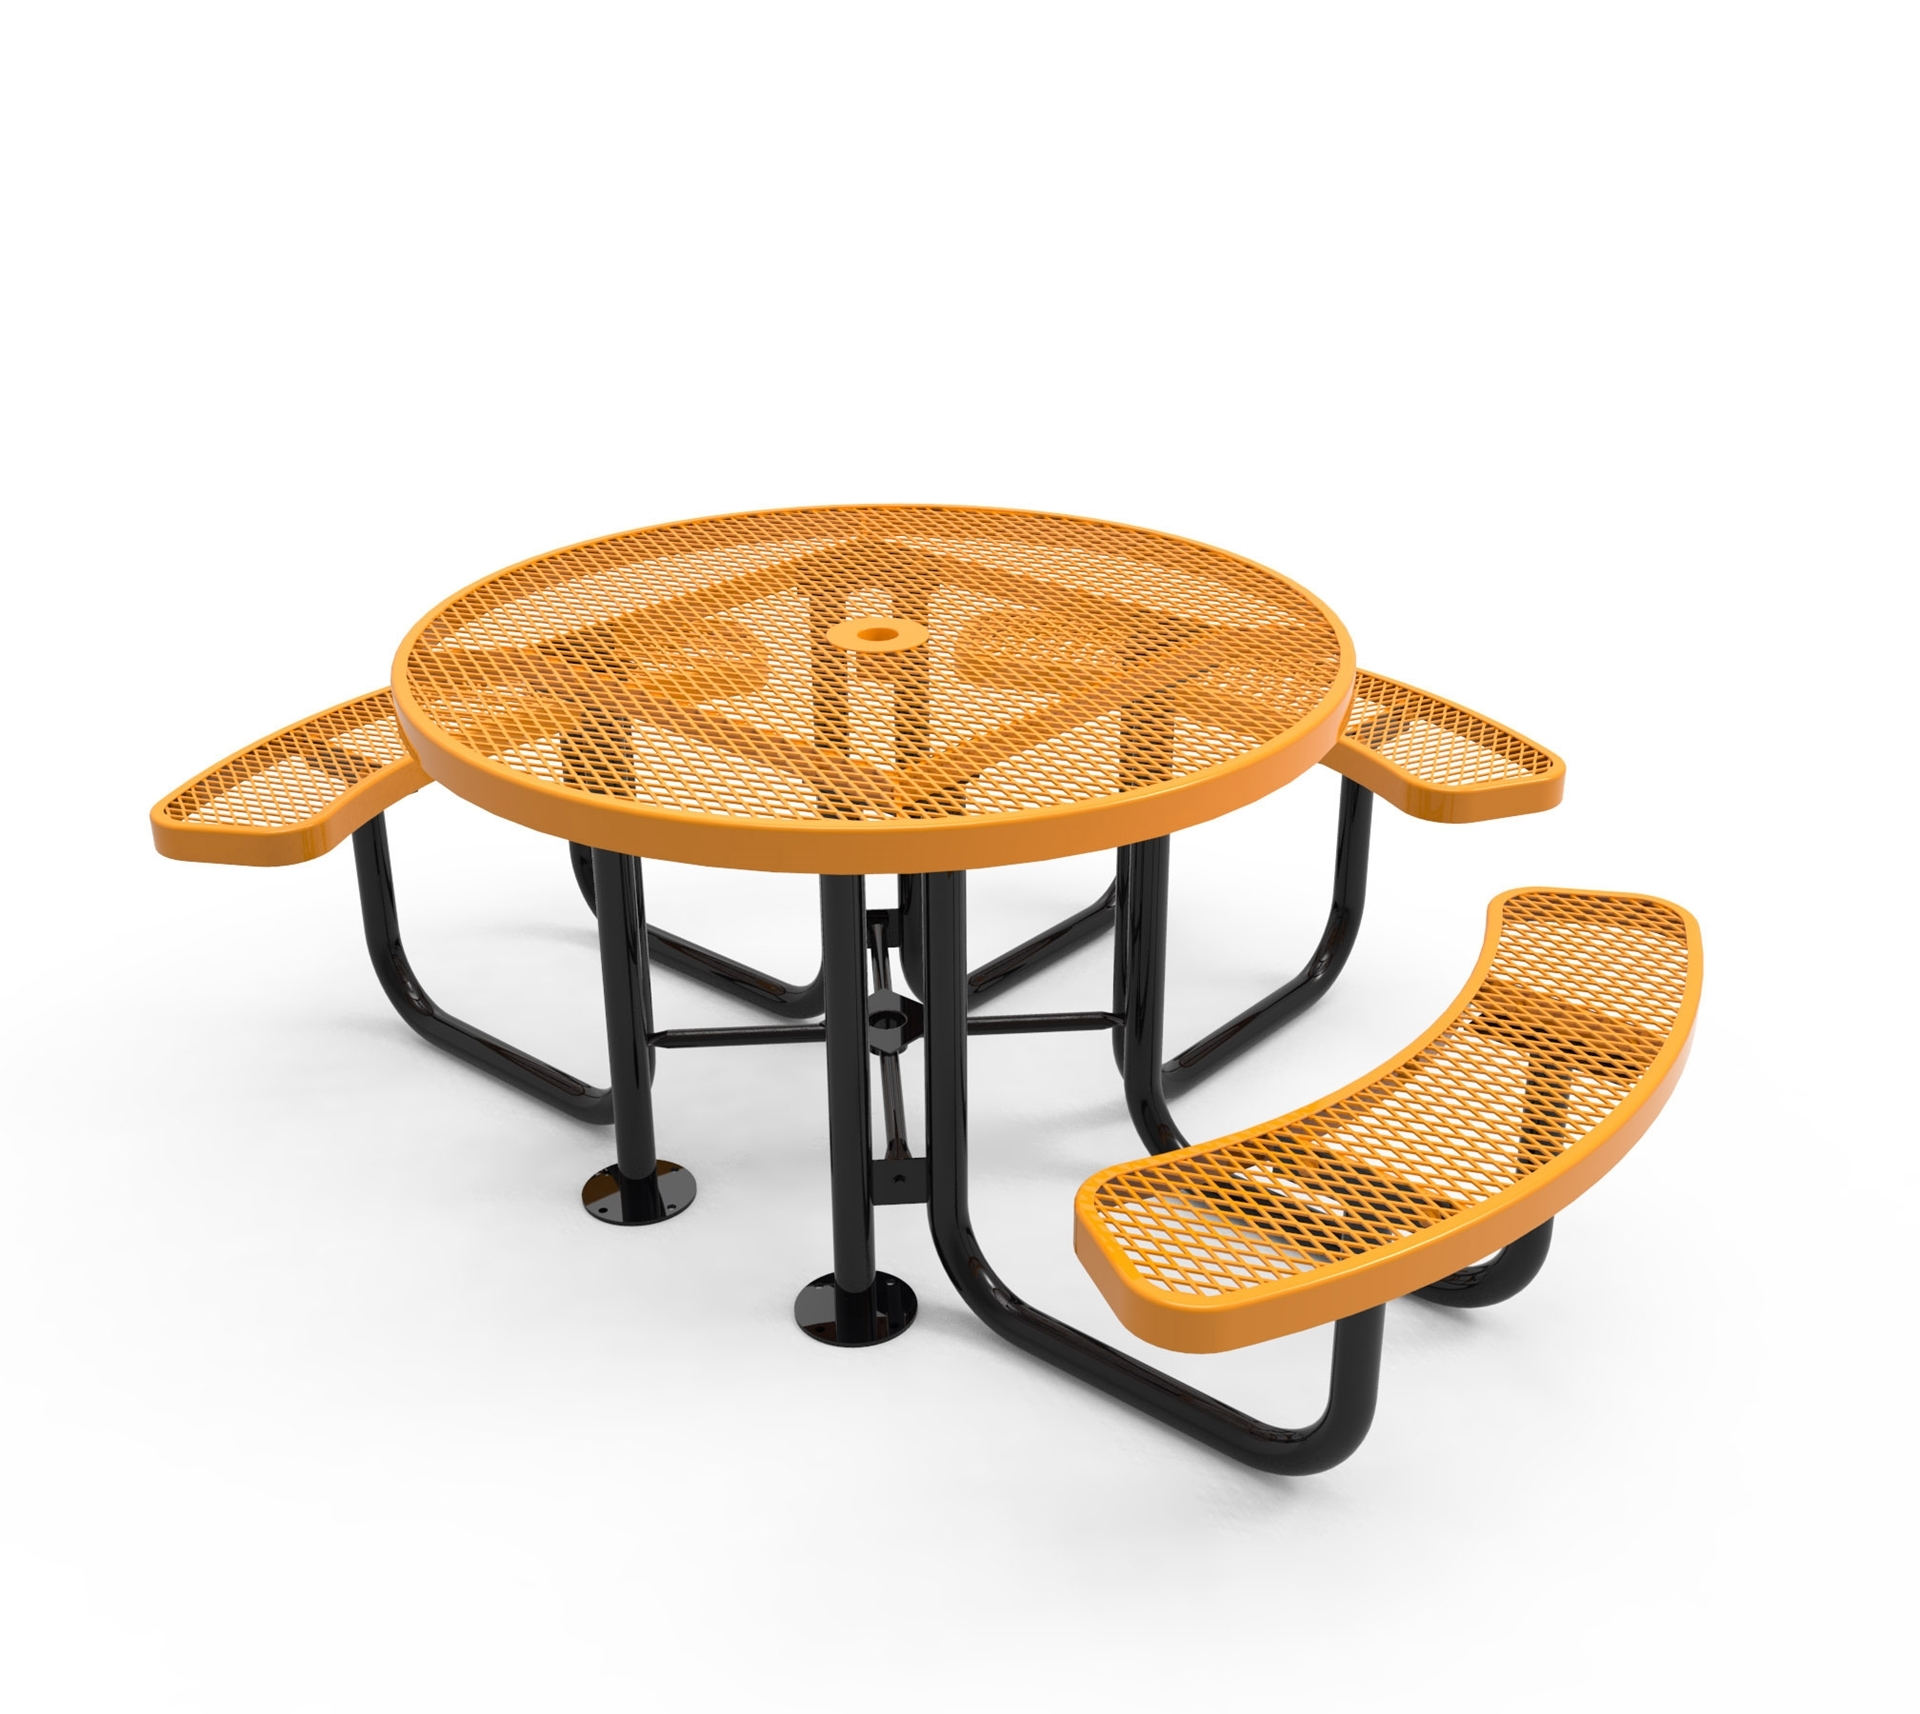 RHINO ADA Round Picnic Table For Universal Access